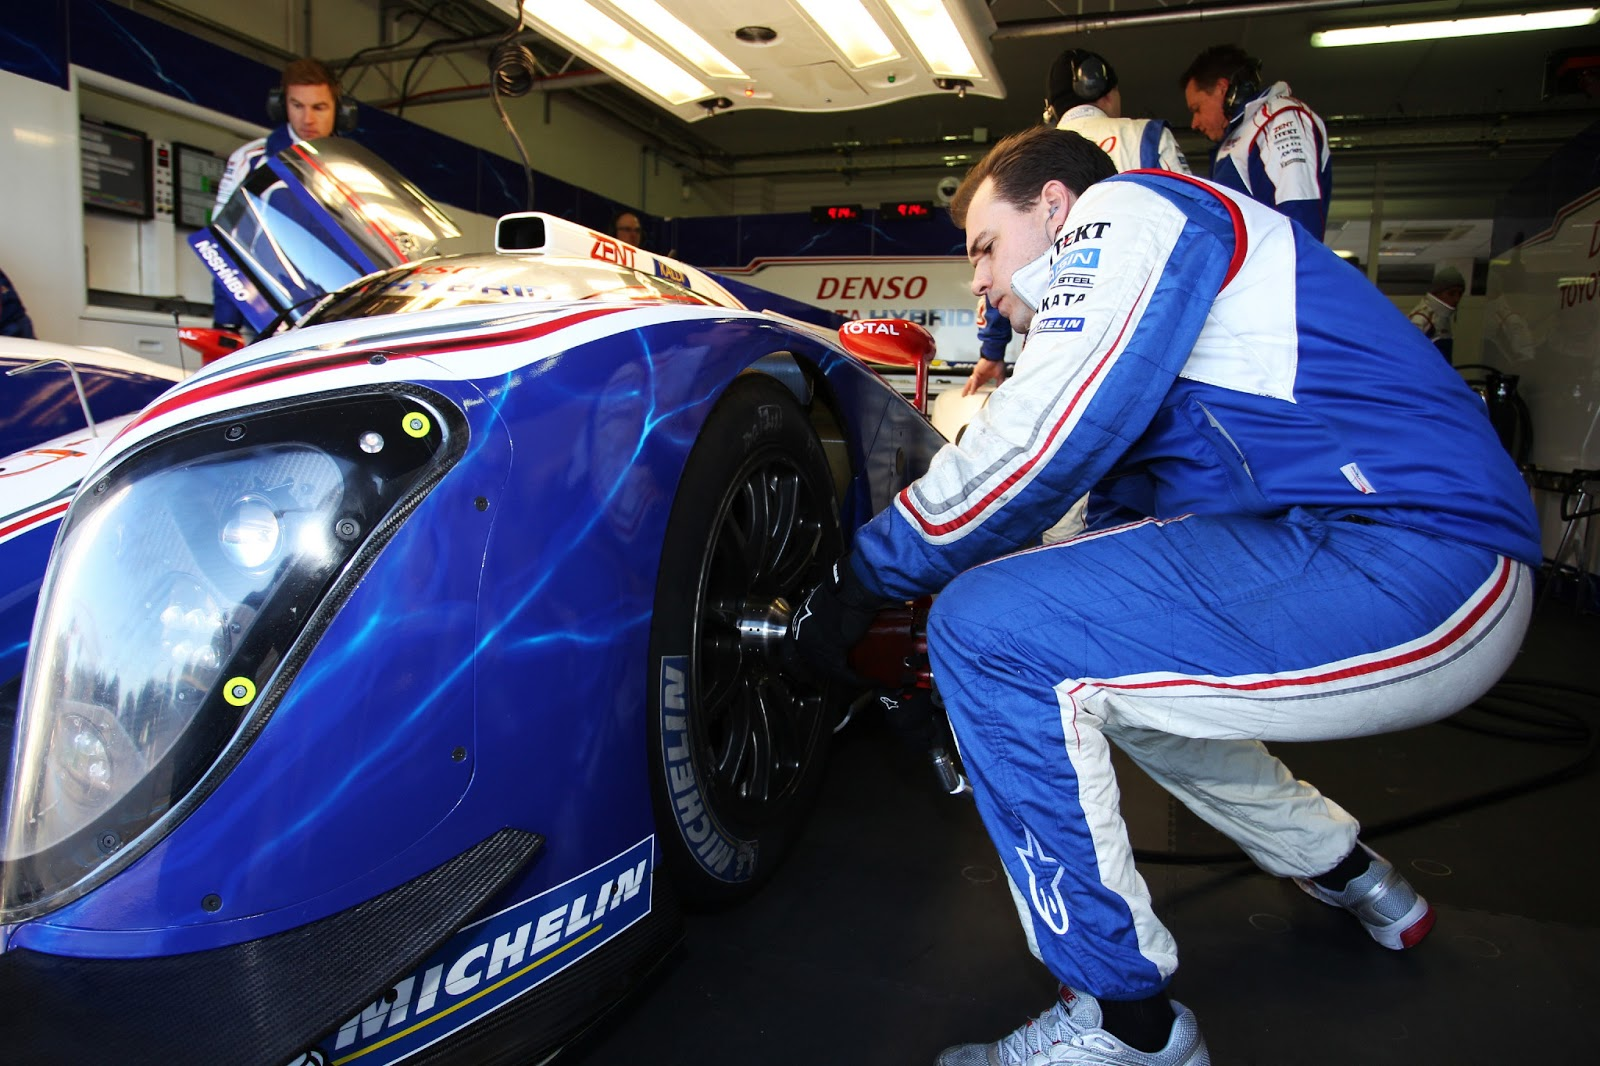 Toyota aims to win WEC with revised TS030 hybrid race car